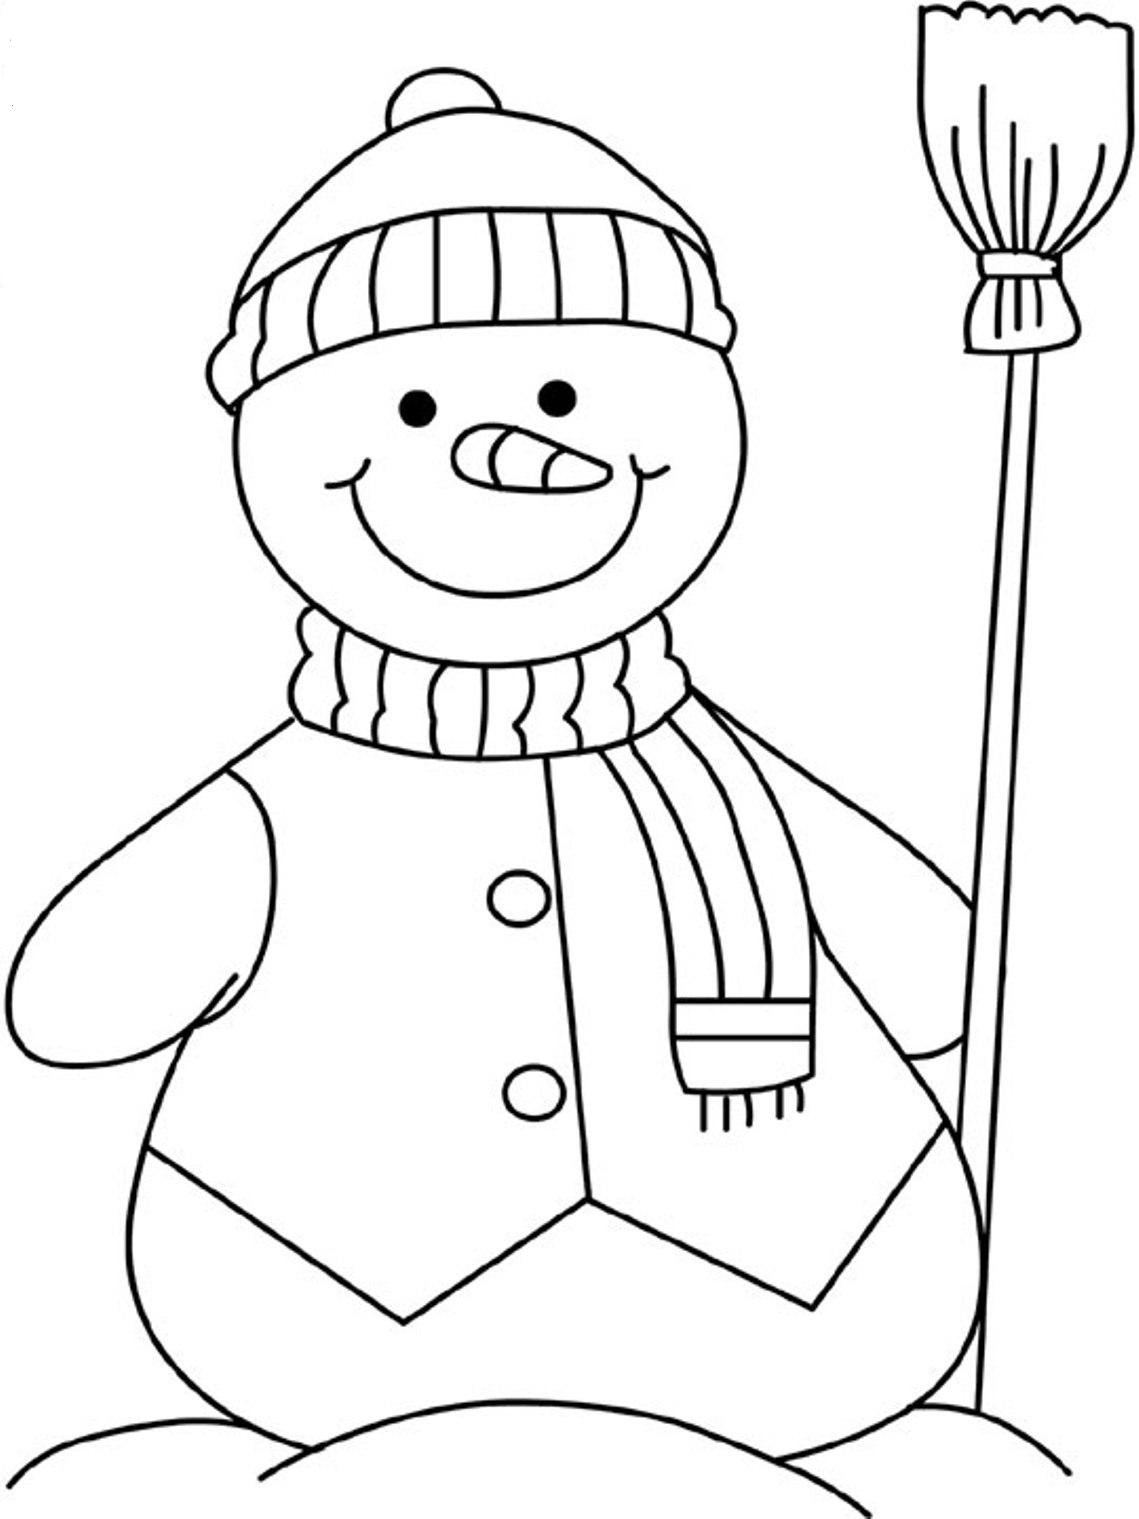 1139x1519 Frosty The Snowman Coloring Pages On Bookinfo And Throughout